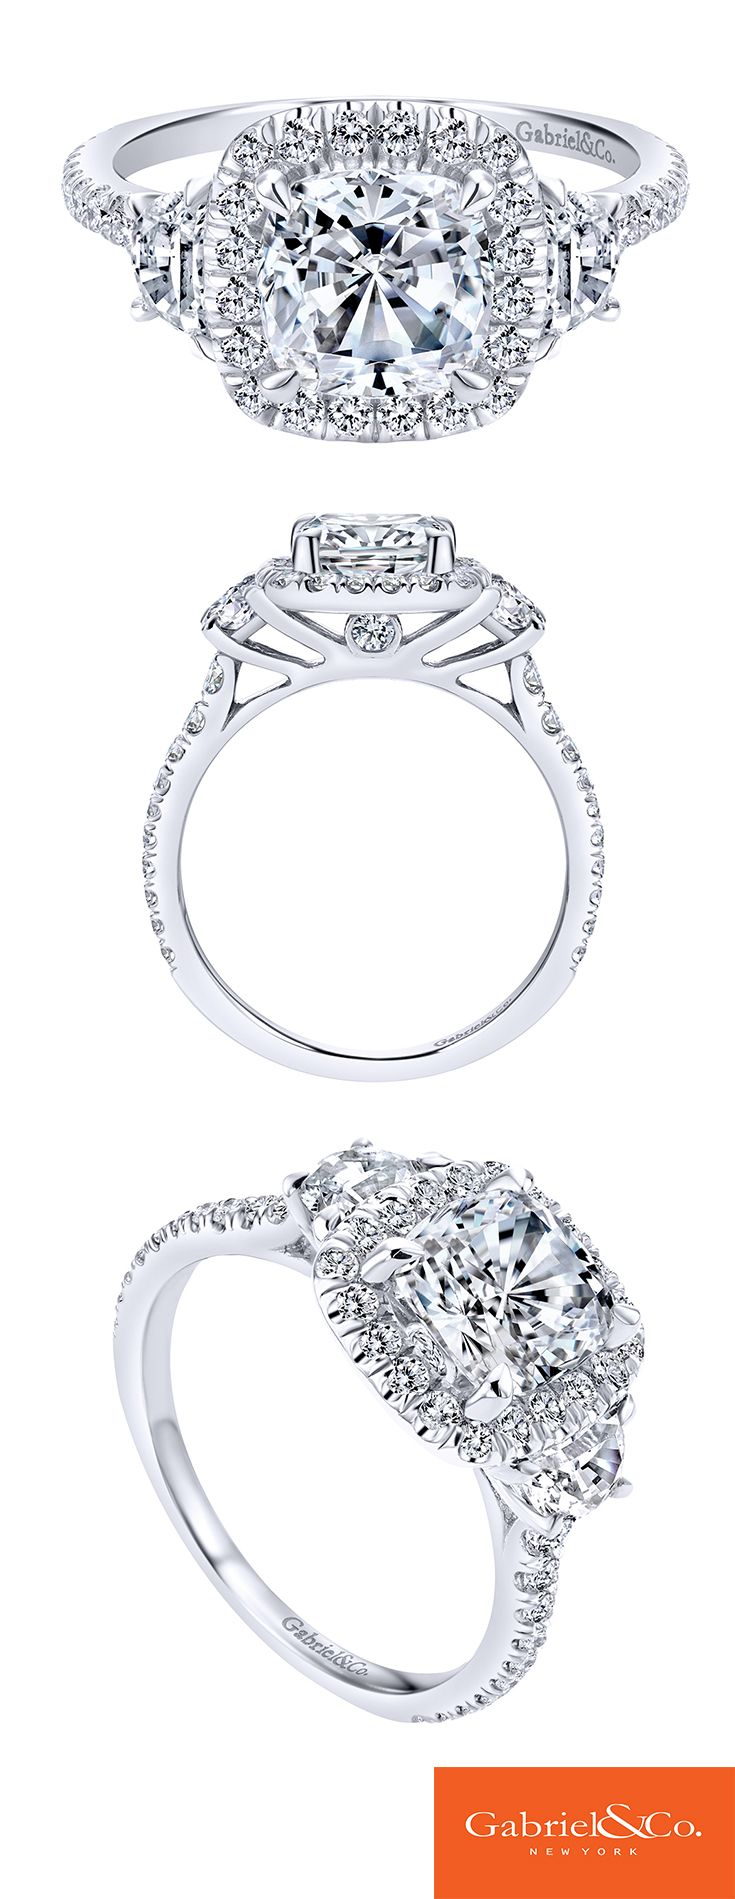 Gabriel & Co. - Voted #1 Most Preferred Jewelry Designer. Discover this perfect engagement ring or customize your own at Gabriel & Co.